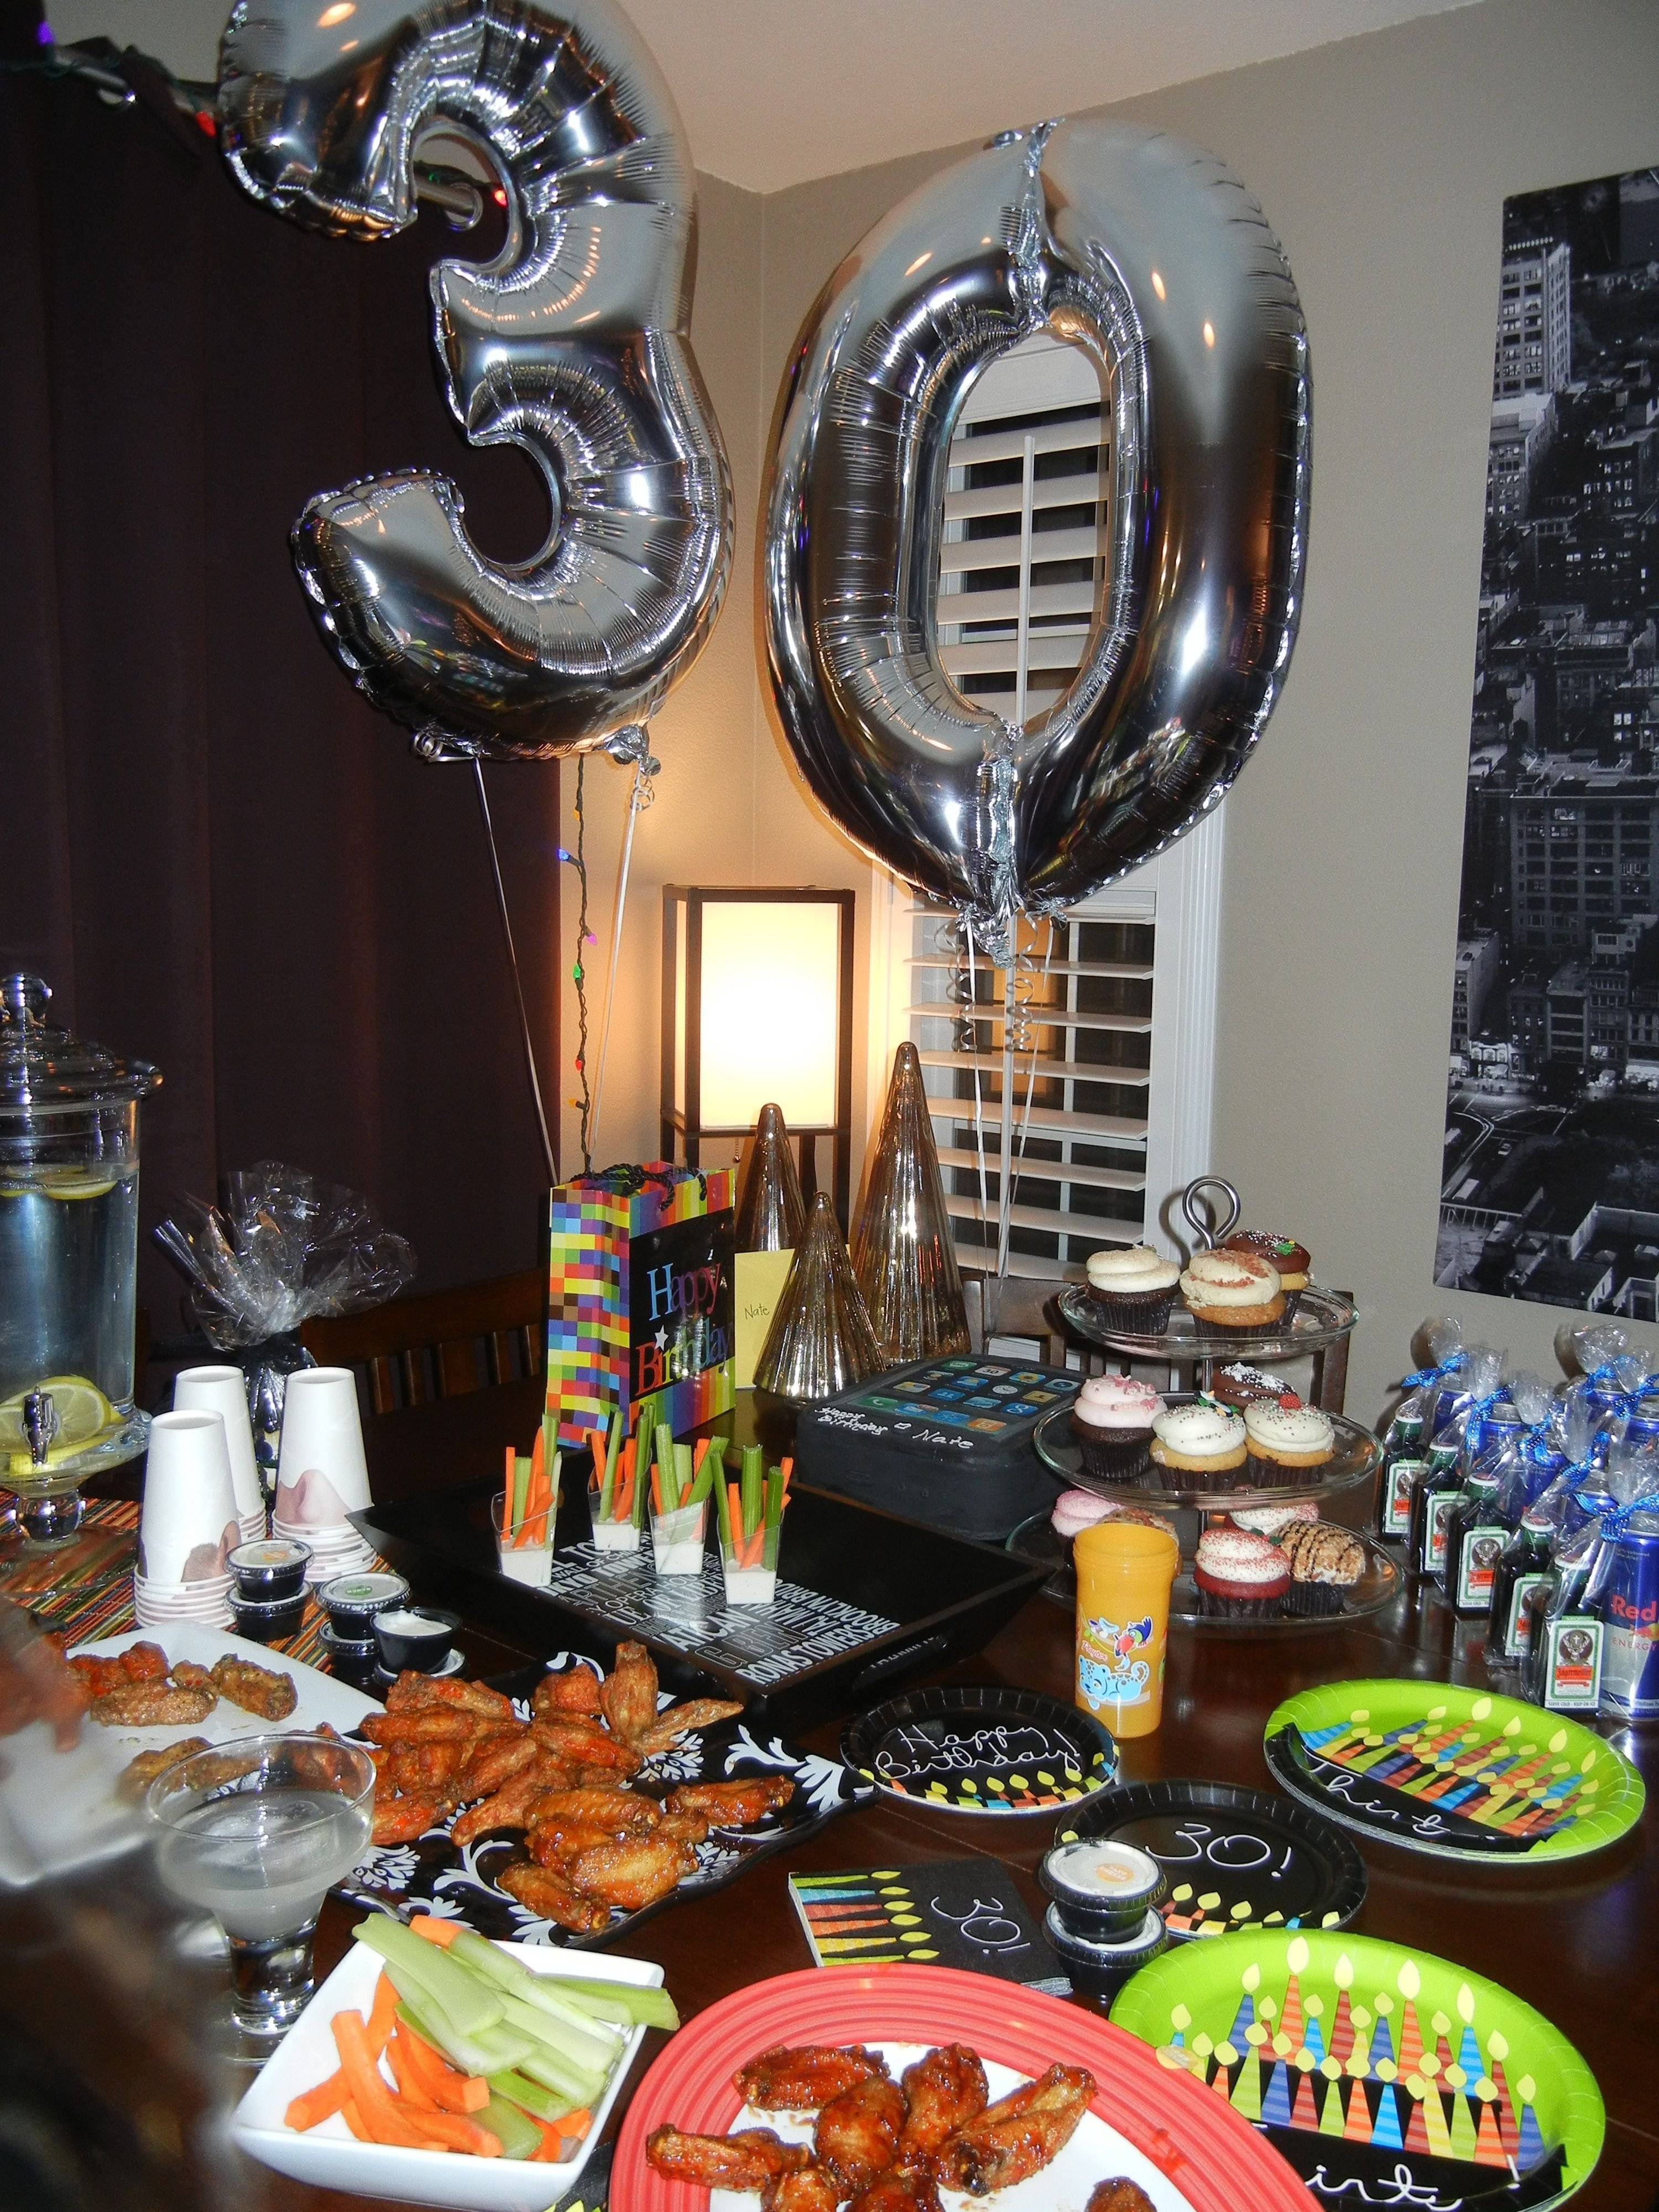 10 Most Recommended Surprise 30Th Birthday Party Ideas husbands 30th birthday my stuff pinterest 30 birthday 30th 5